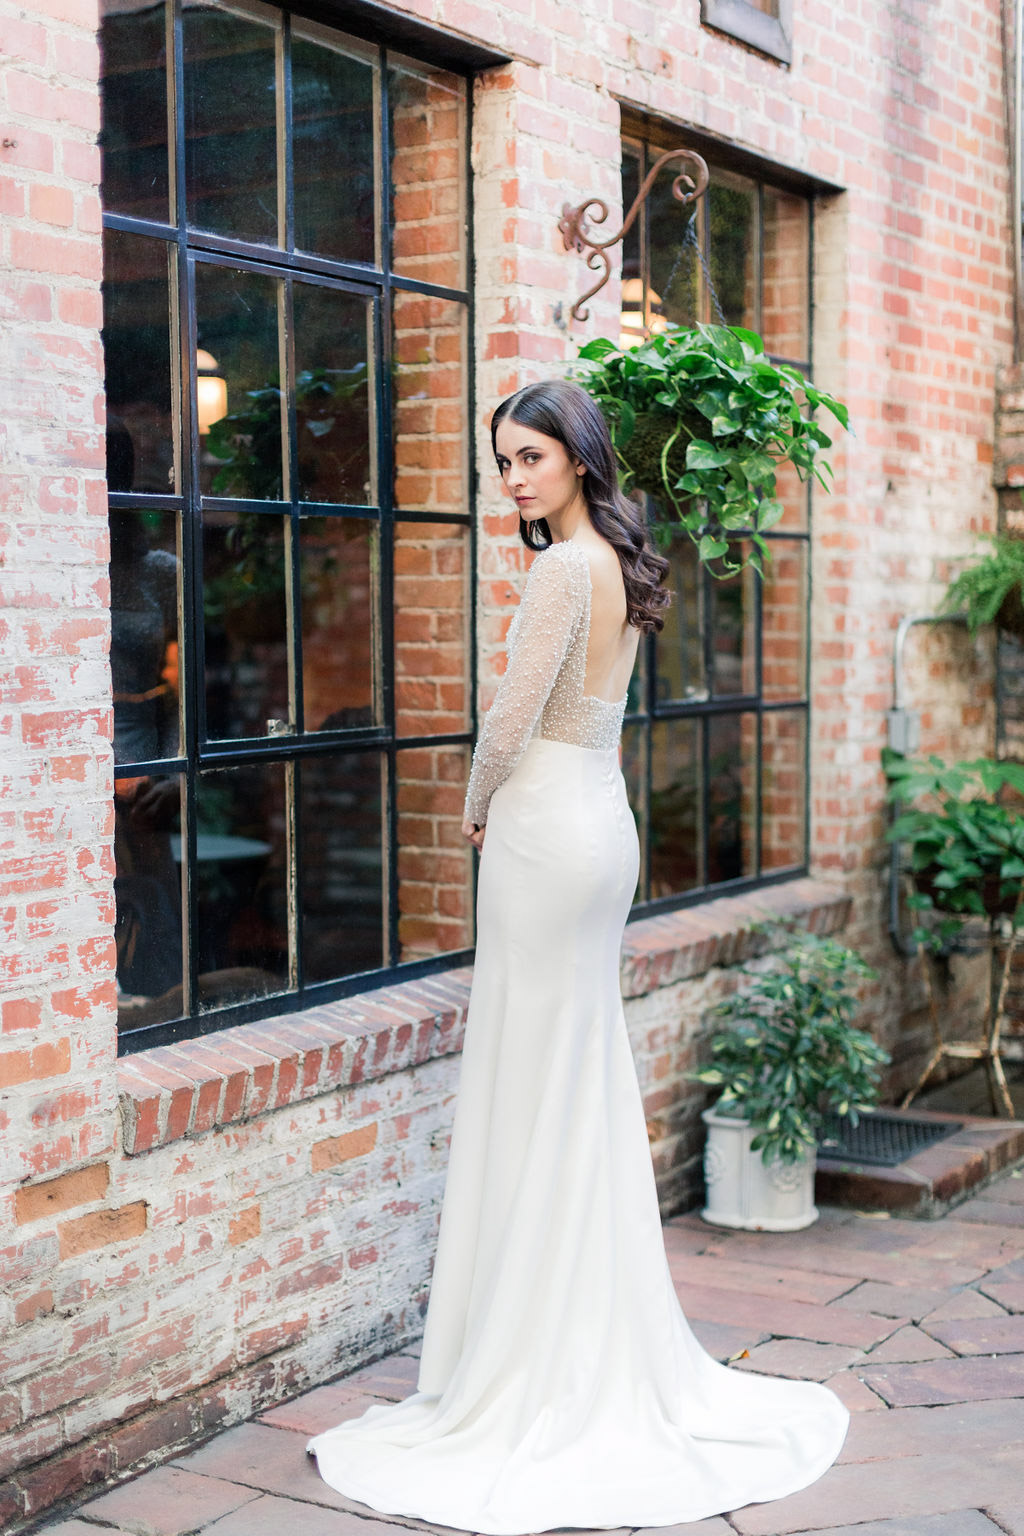 Alexa wedding dress from the Allison Webb Spring 2019 Bridal Fashion Event in LA, Photo by Jessica Grazia Mangia Photography